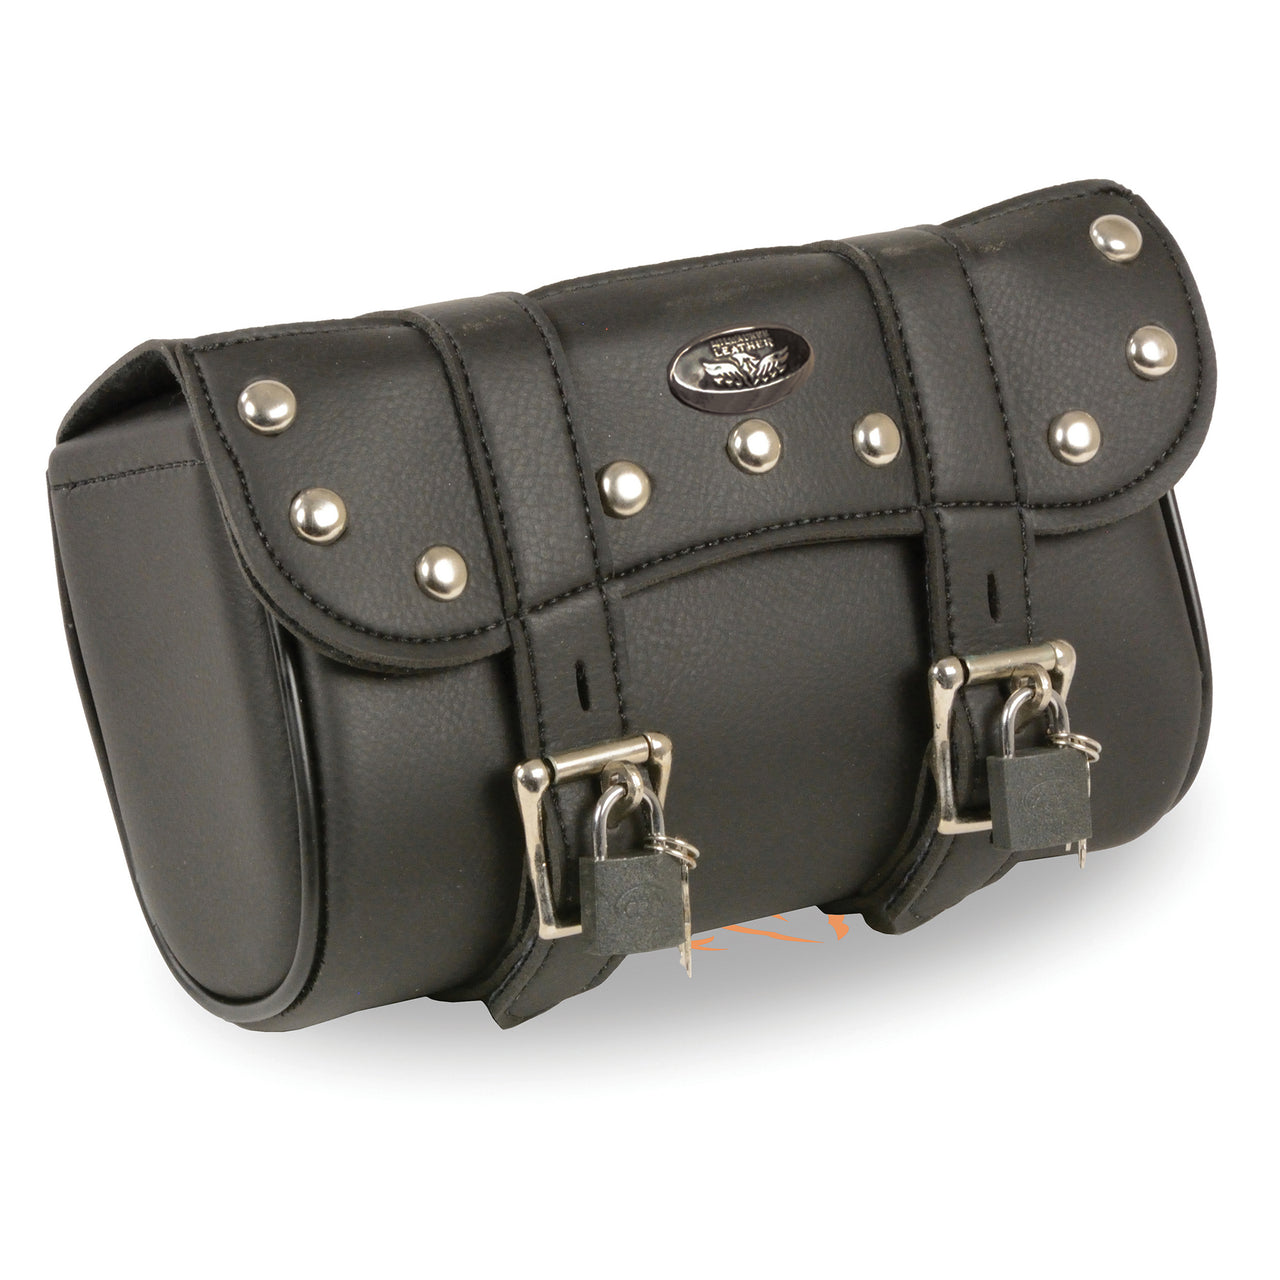 Medium Studded PVC Tool Bag w/ Key Locks (9X4.5X3.5) - HighwayLeather